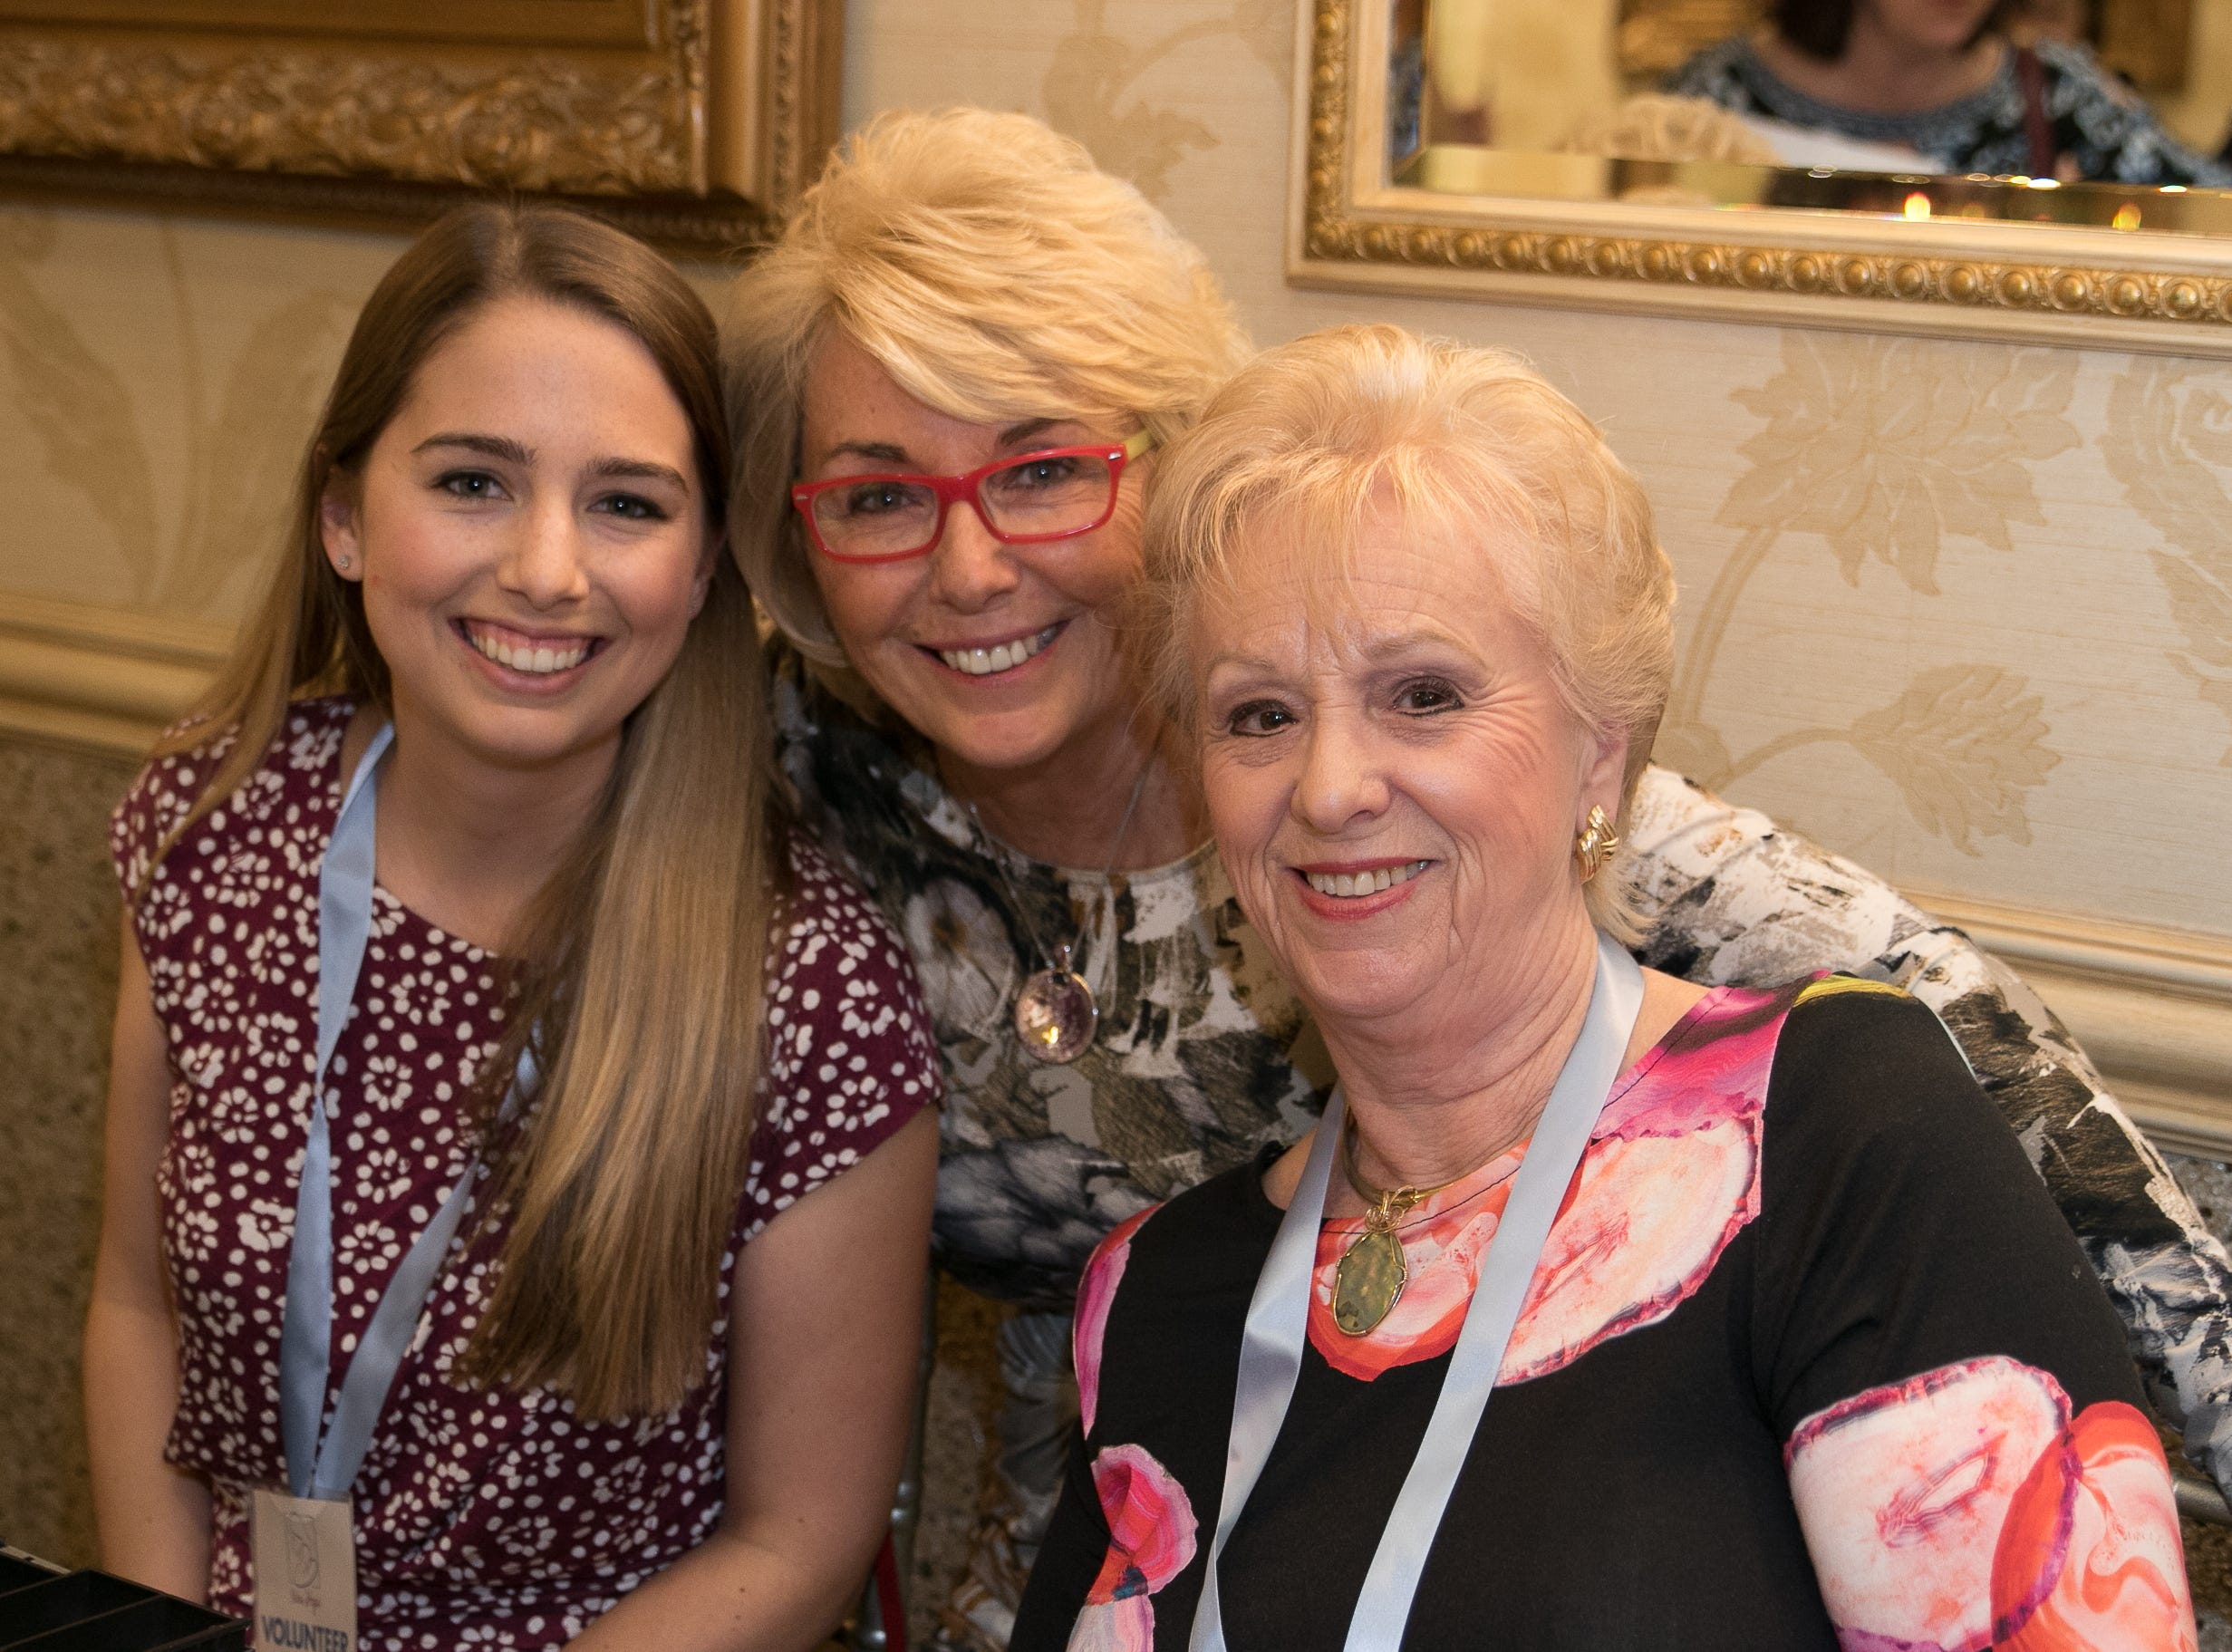 Jessica Turlick Vincentz, Kathy Turlick, Ellie Longwell.  New Hope, a Pregnancy Resource Center, held their annual gala at Seasons in Washington Township. 04/05/2019